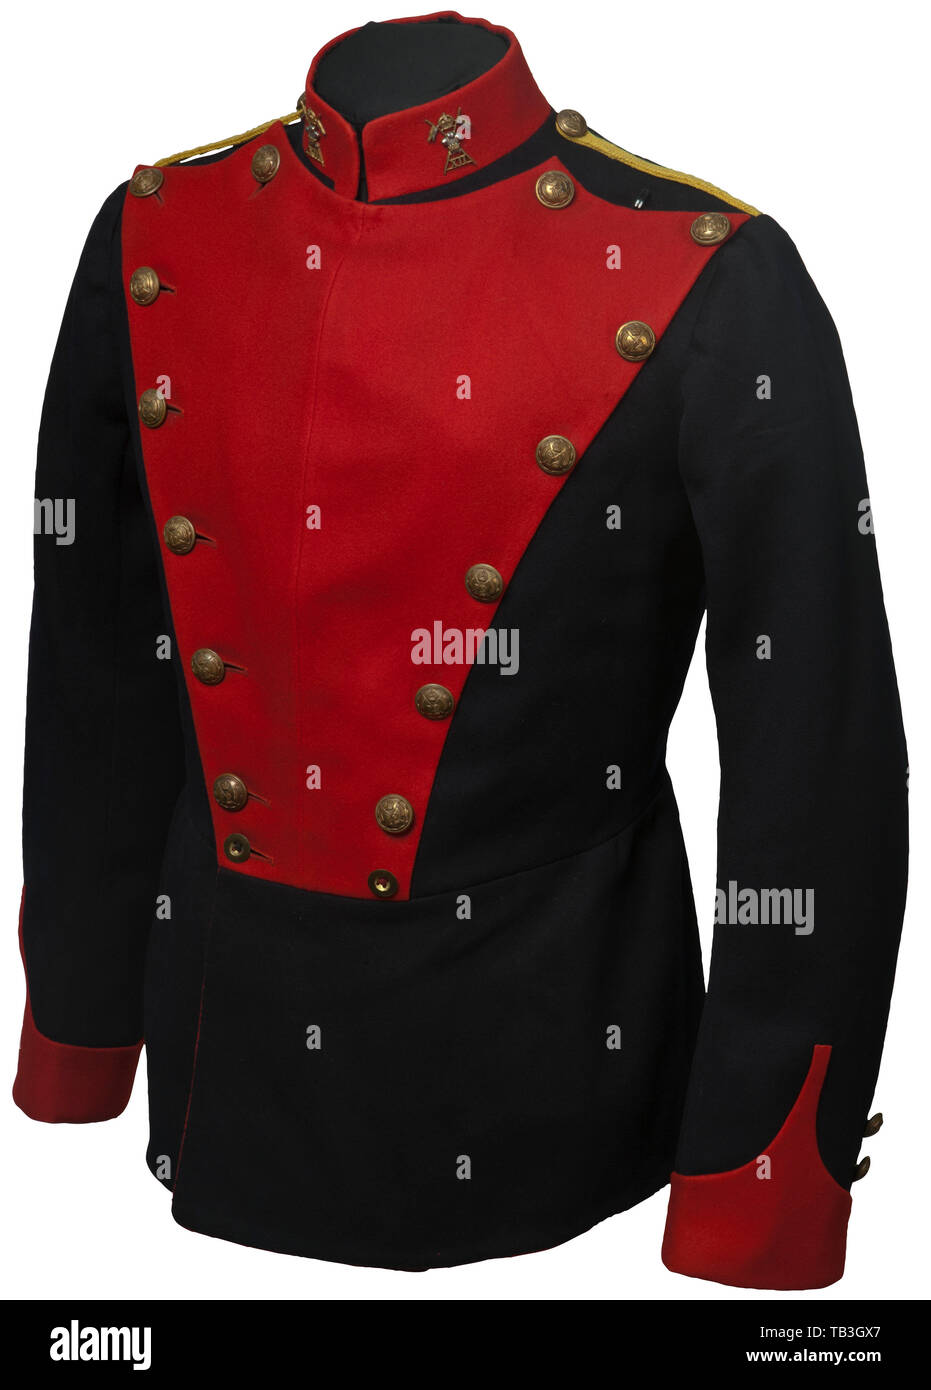 An English enlisted lancer's uniform for an individual in the 12th Lancer Regiment, Tunic of black cotton material with red piping on arms and back, red cotton collar with regimental insignia, yellow cord sewn in shoulder boards with 12th lancer buttons, gold regimental buttons, red parade rabatte, white cotton lining in tunic and black silk collar lining. 1914 dated. USA-lot. historic, historical 20th century, Additional-Rights-Clearance-Info-Not-Available Stock Photo